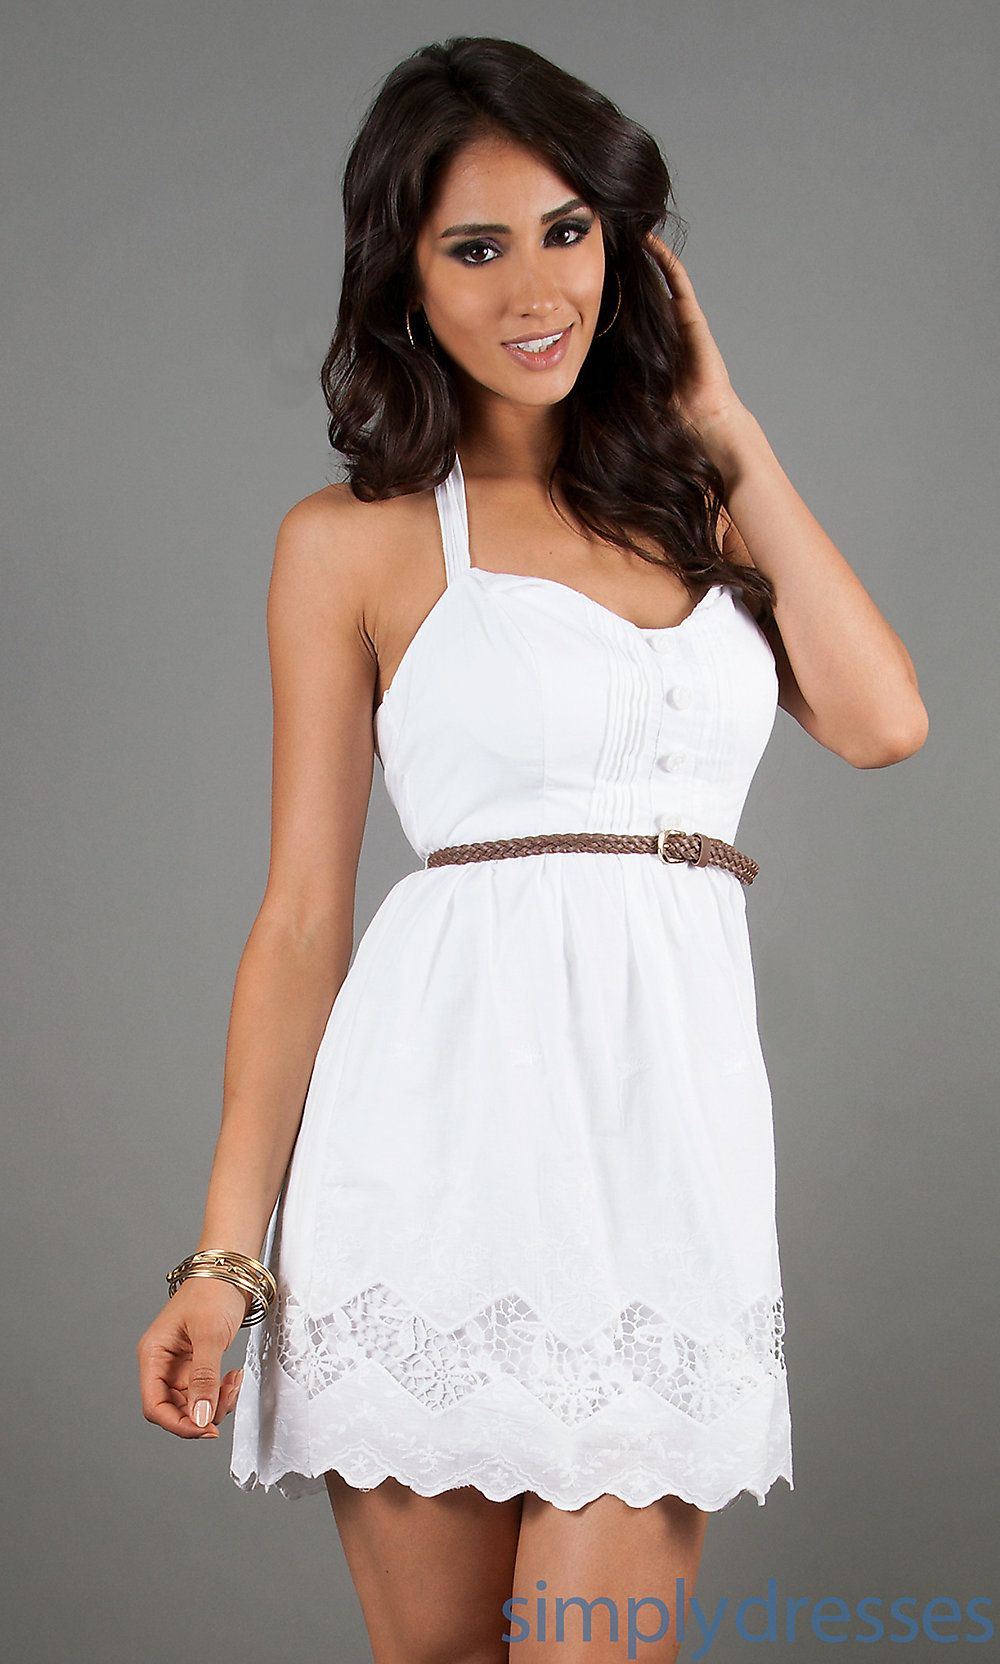 Dresses, Formal, Prom Dresses, Evening Wear: Short White Casual ...